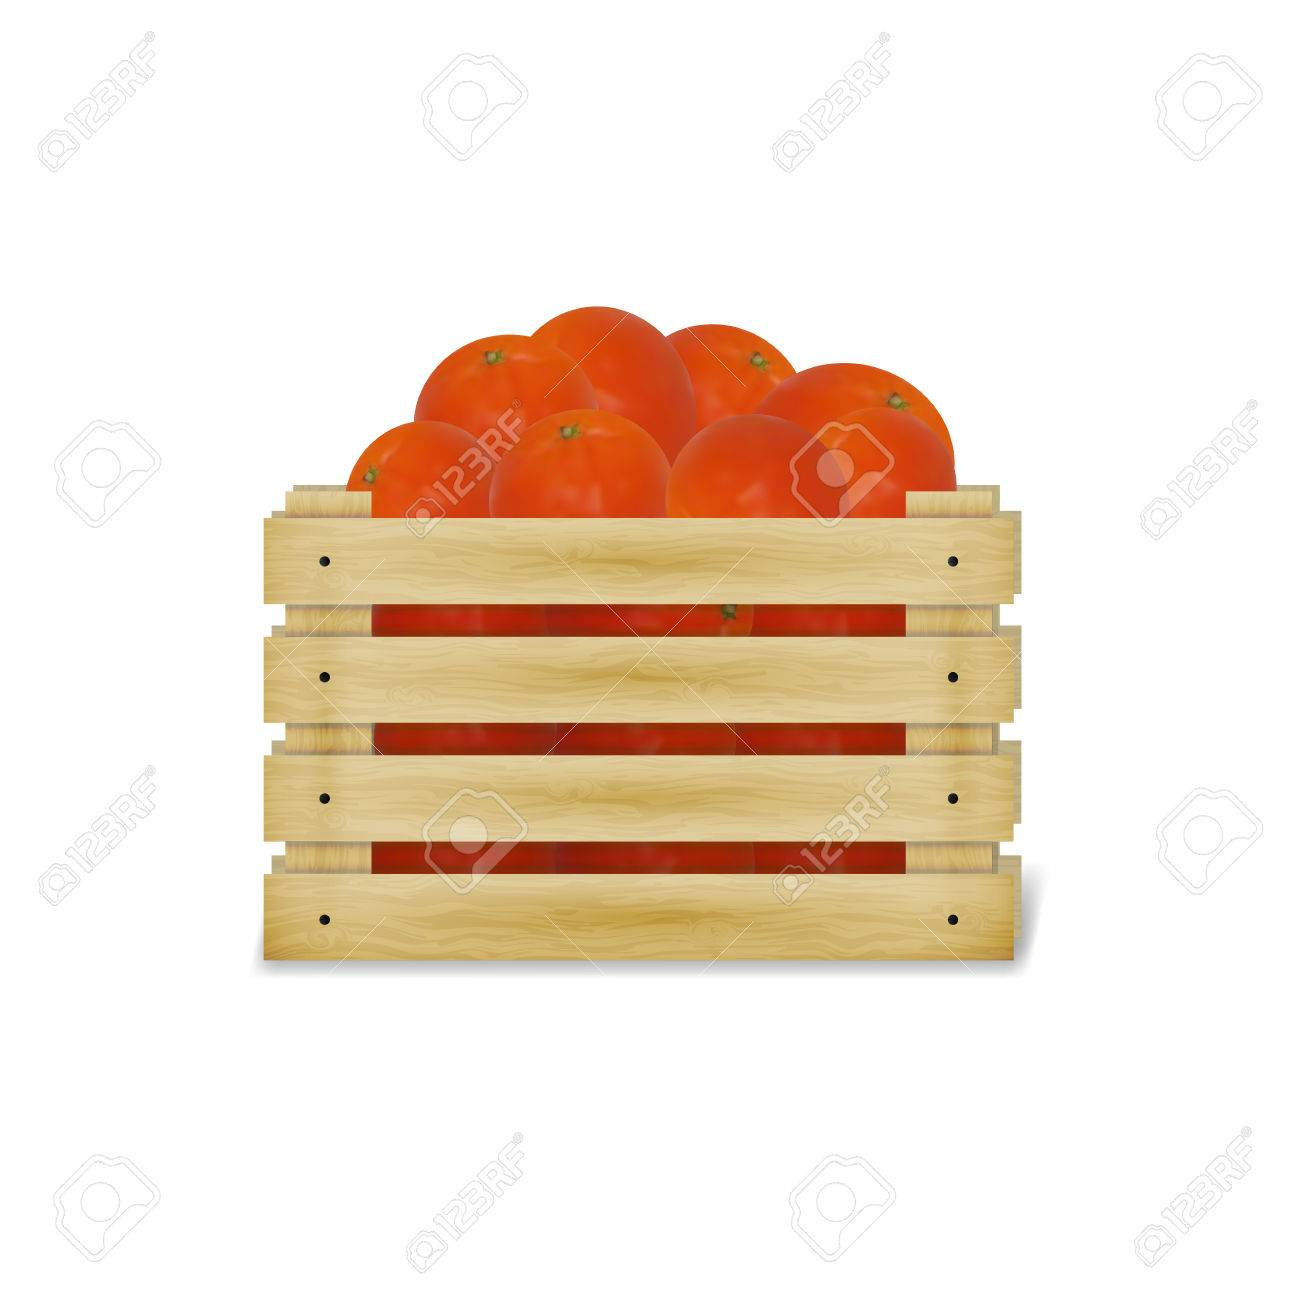 Illustration Of A Wooden Box With Tomatoes Wooden Food Crate